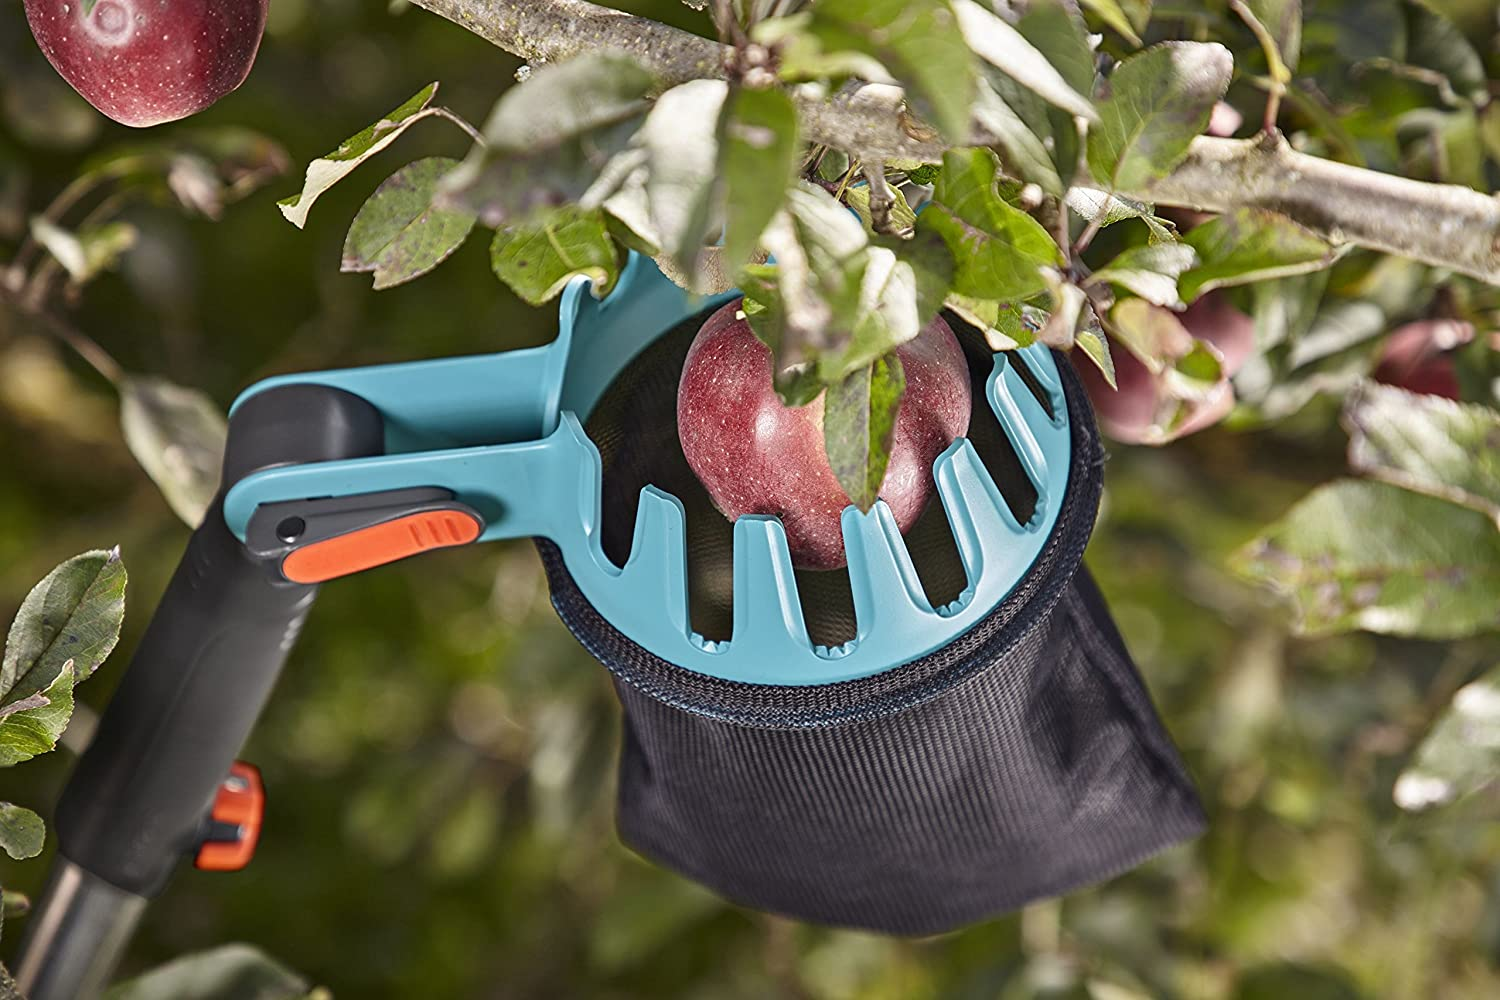 GARDENA combisystem Fruit Collector: The fruit collector for picking up fruit of about 4 to 9 cm without bending over, convenient emptying, compatible with GARDENA combisystem handles (3108-20)